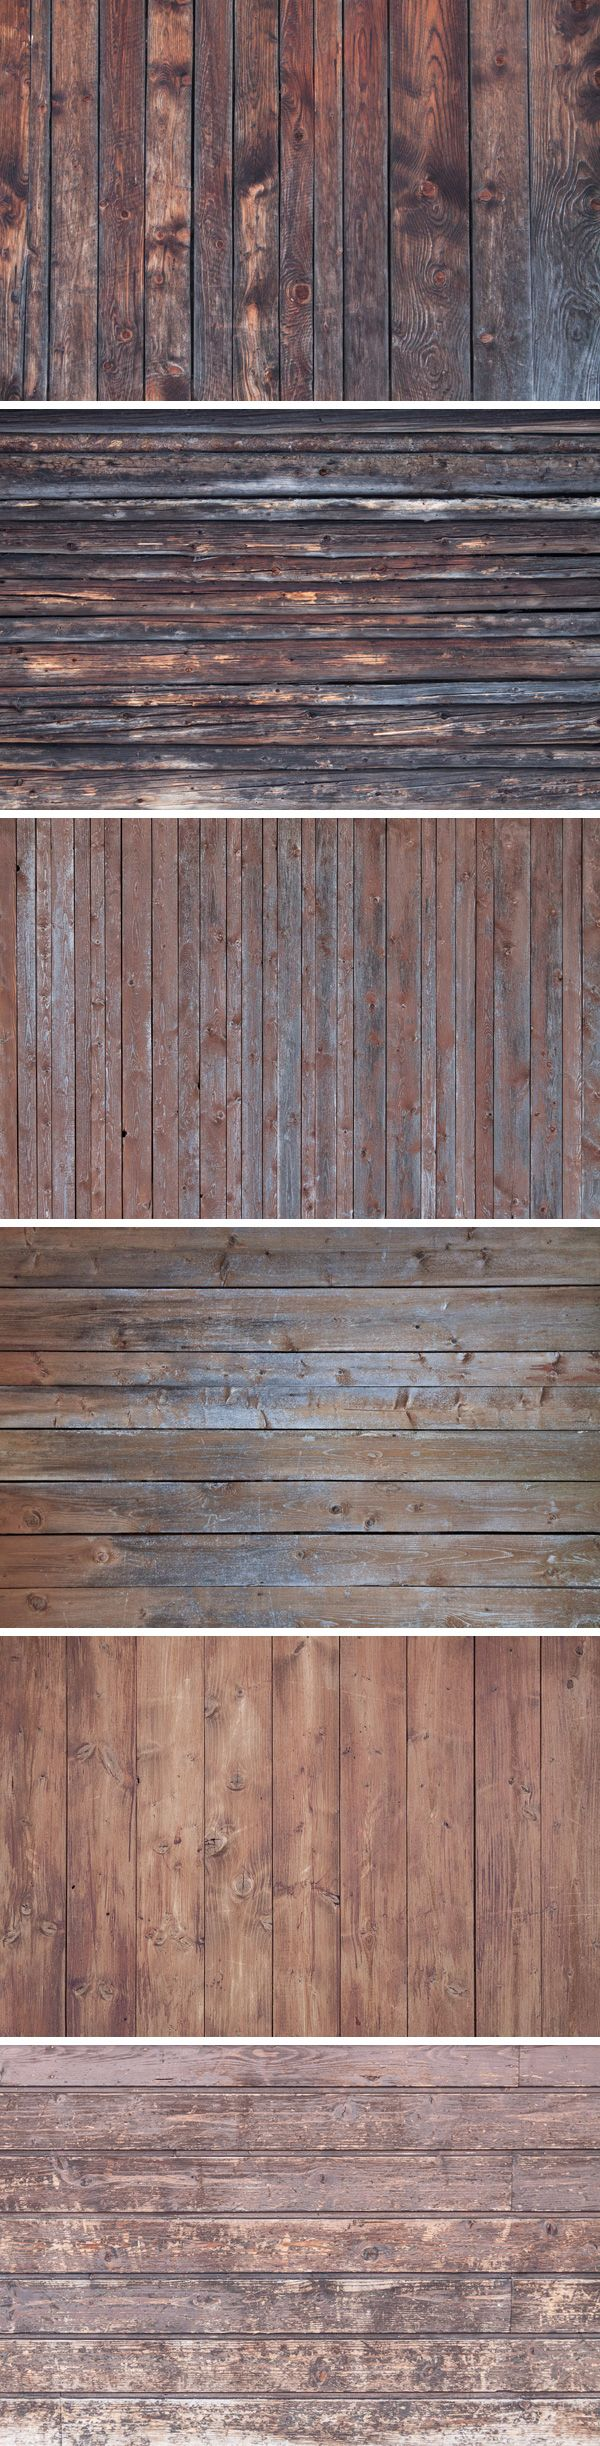 Here is a new collection of 6 original photos of aged wood, that can be used as textures in vintage styled designs...